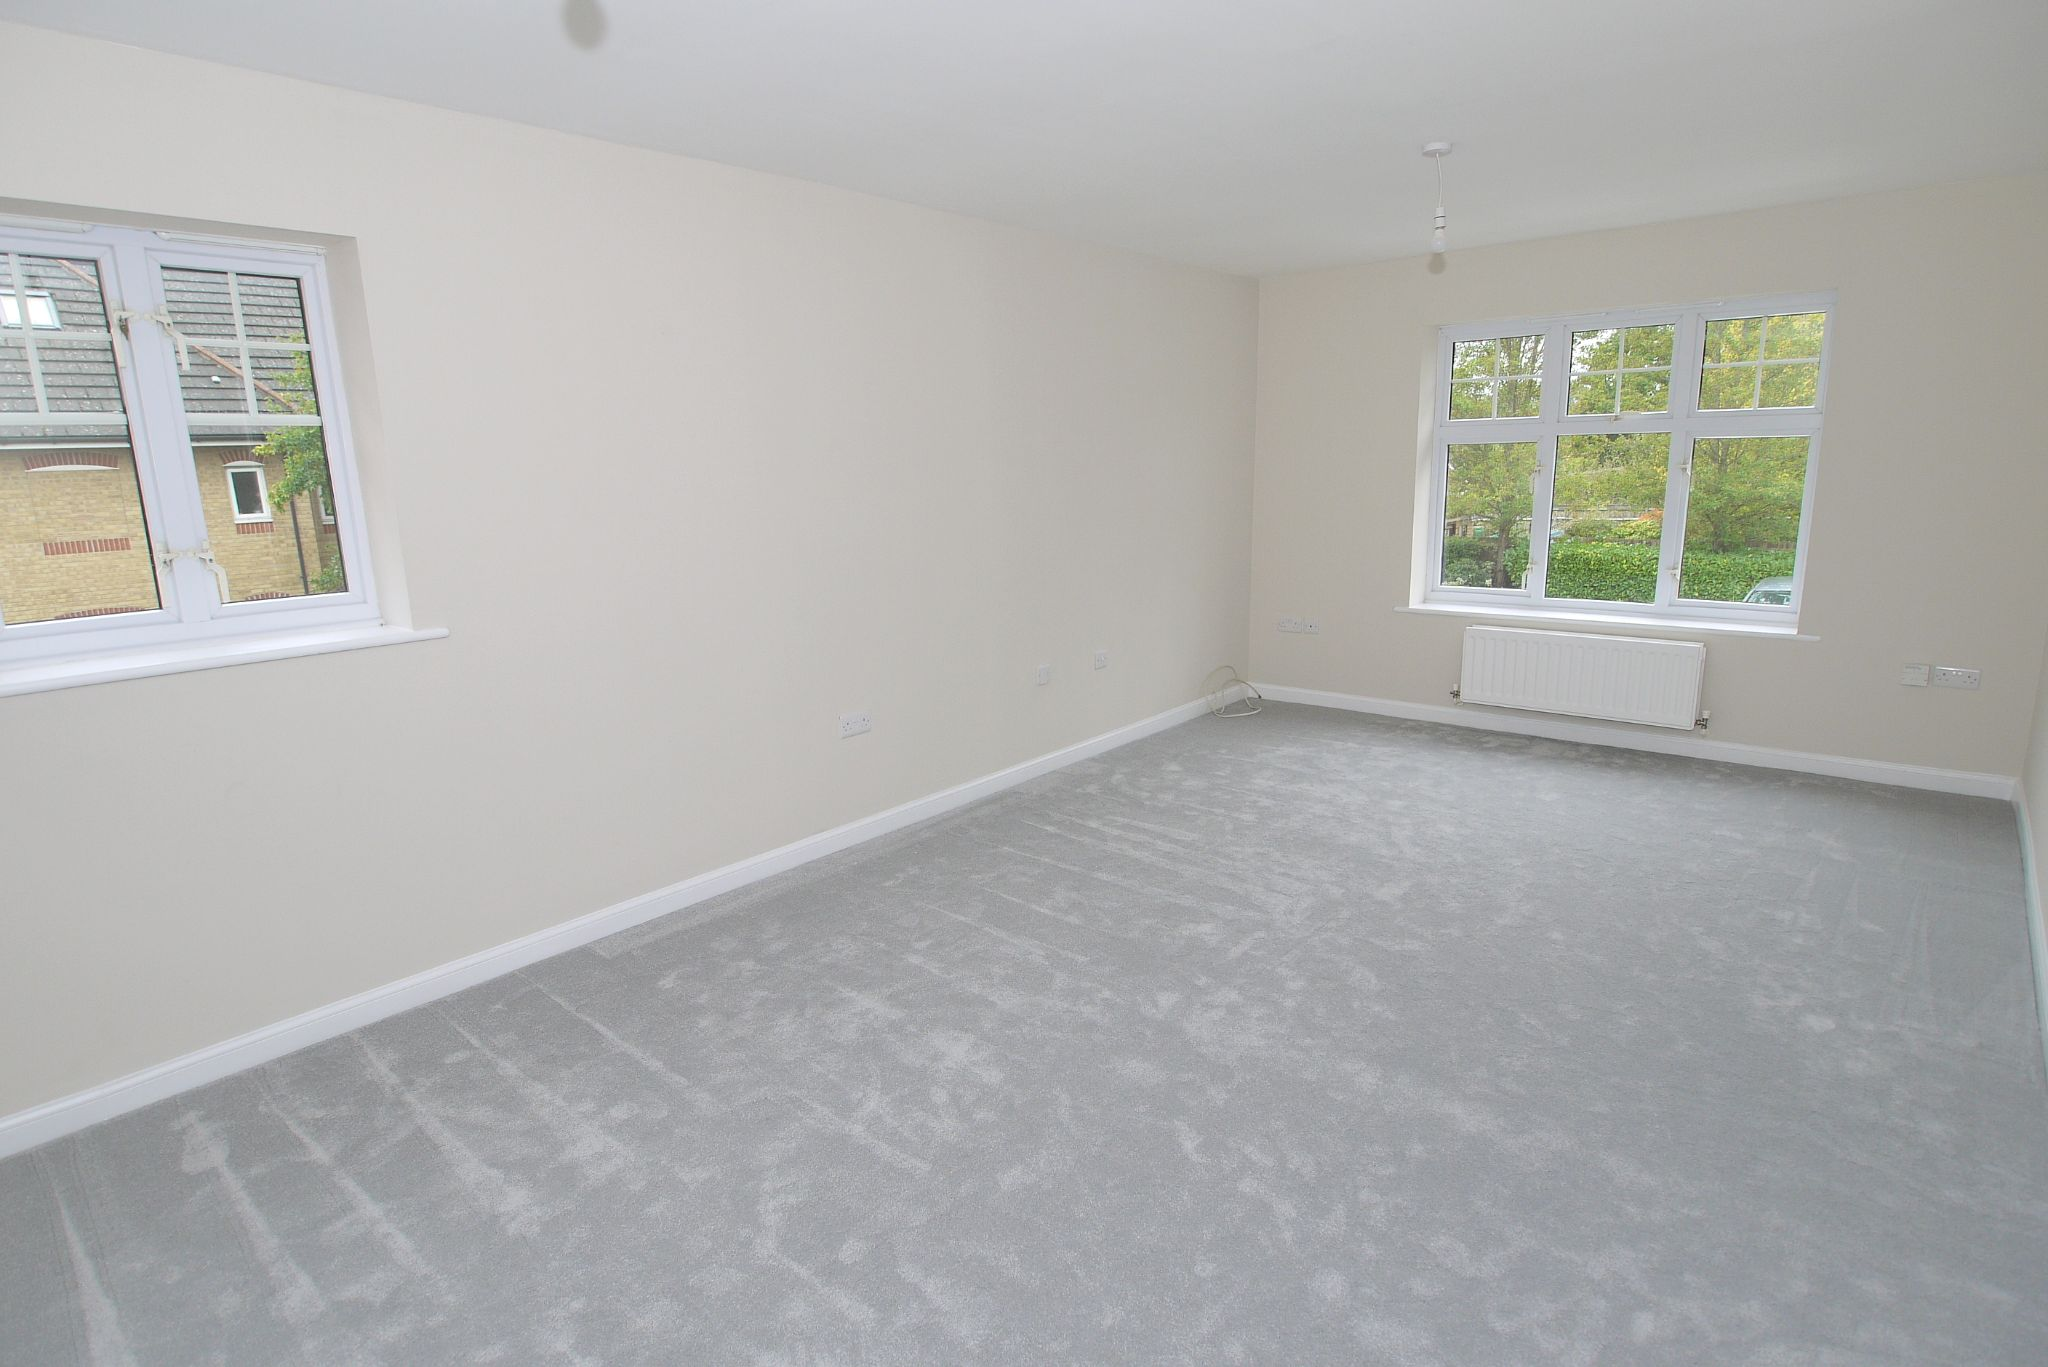 2 bedroom apartment flat/apartment For Sale in Dunton Green - Photograph 3